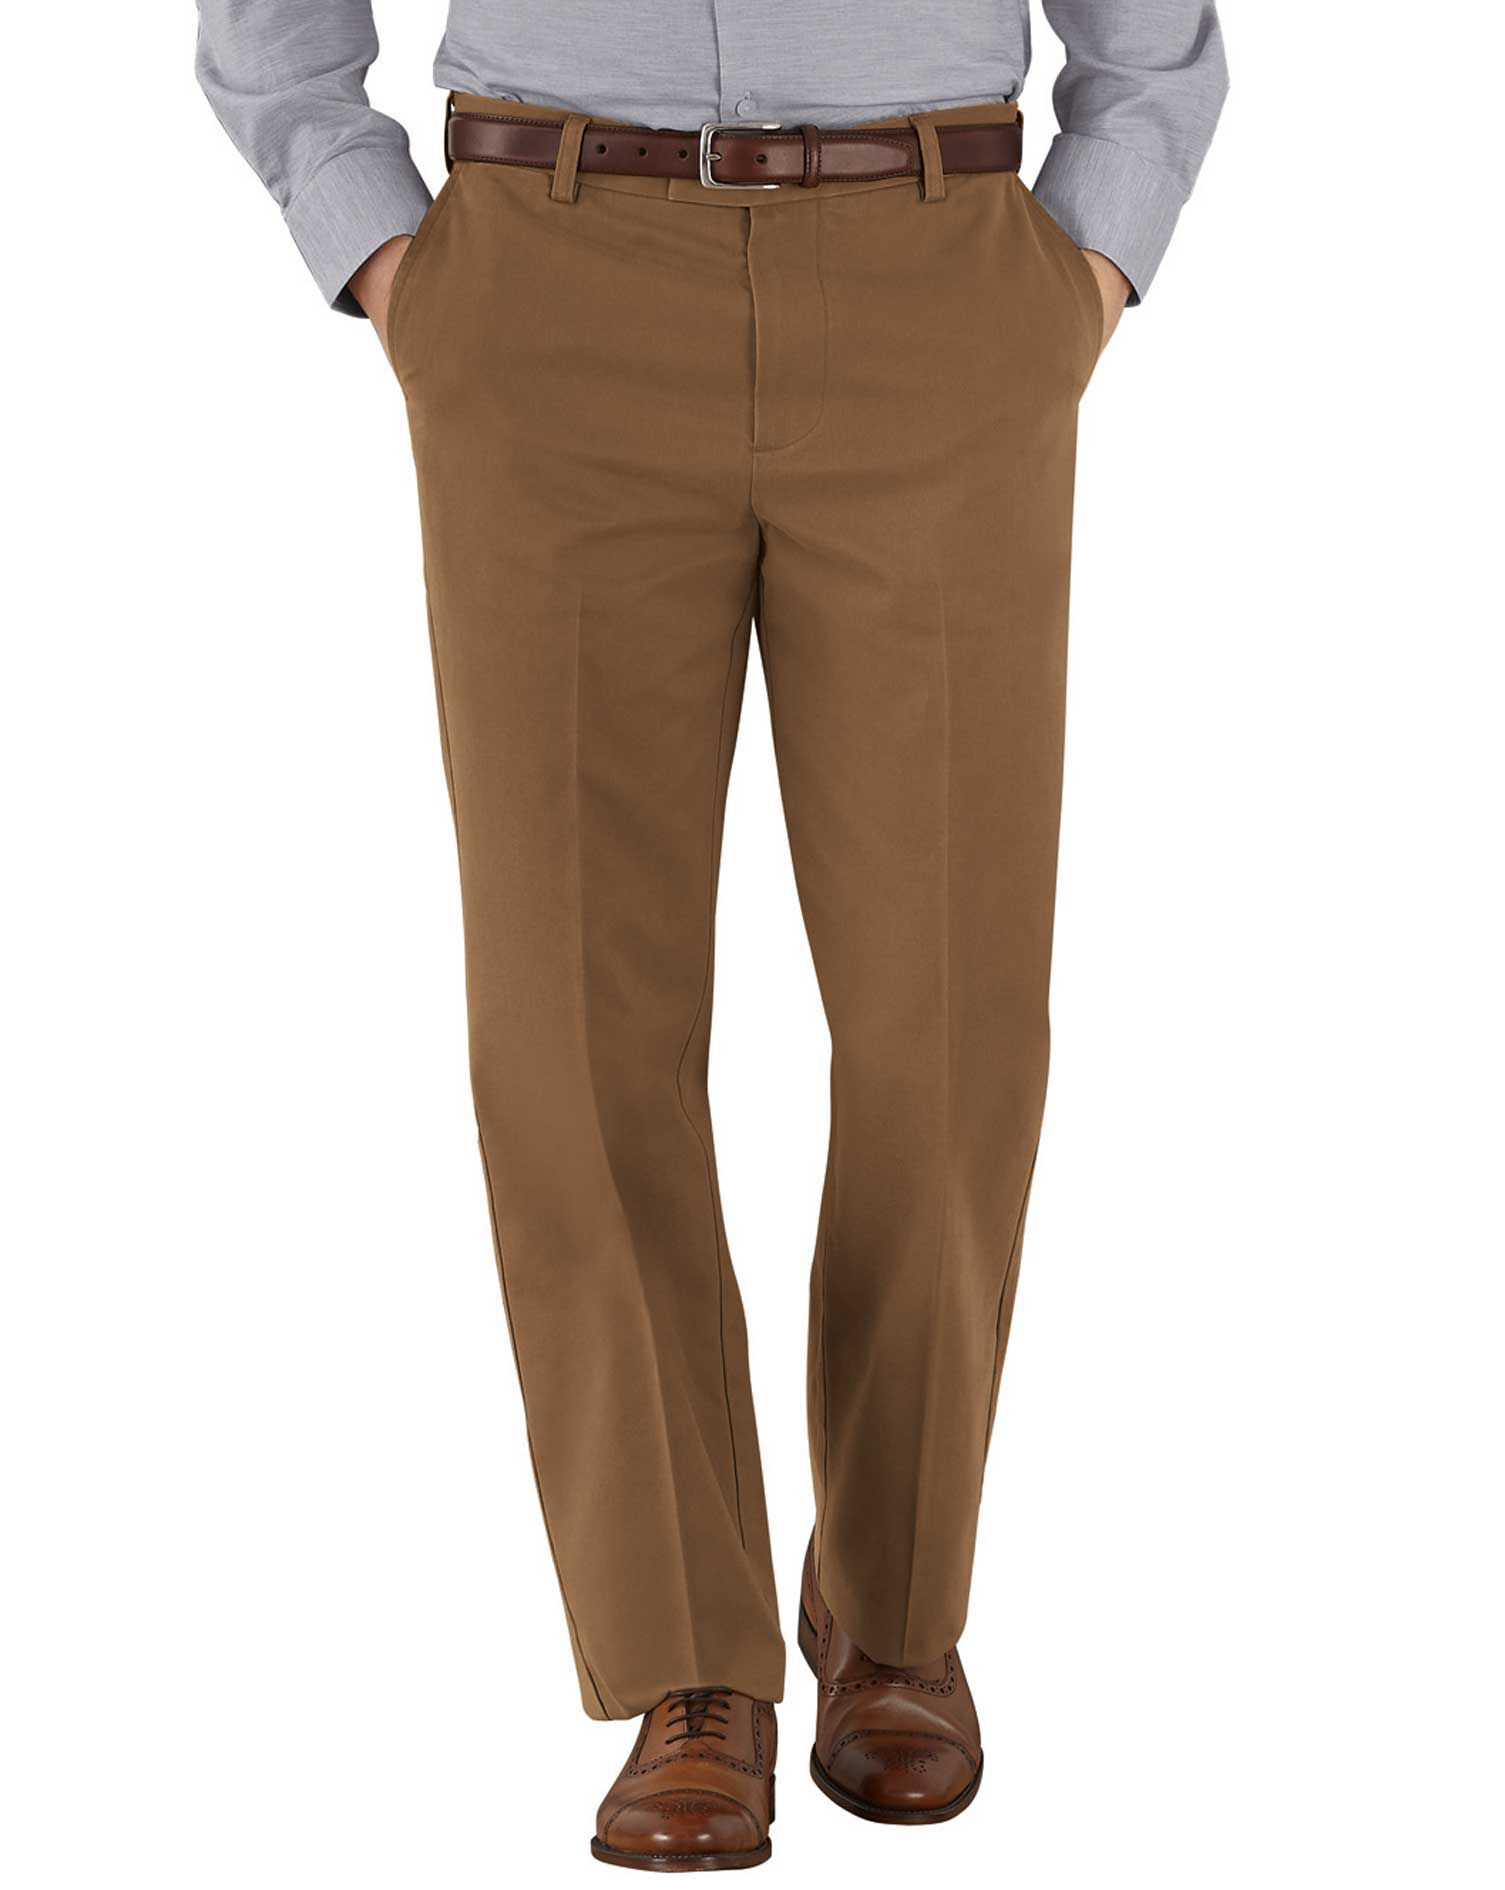 Camel Classic Fit Flat Front Non-Iron Cotton Chino Trousers Size W42 L32 by Charles Tyrwhitt